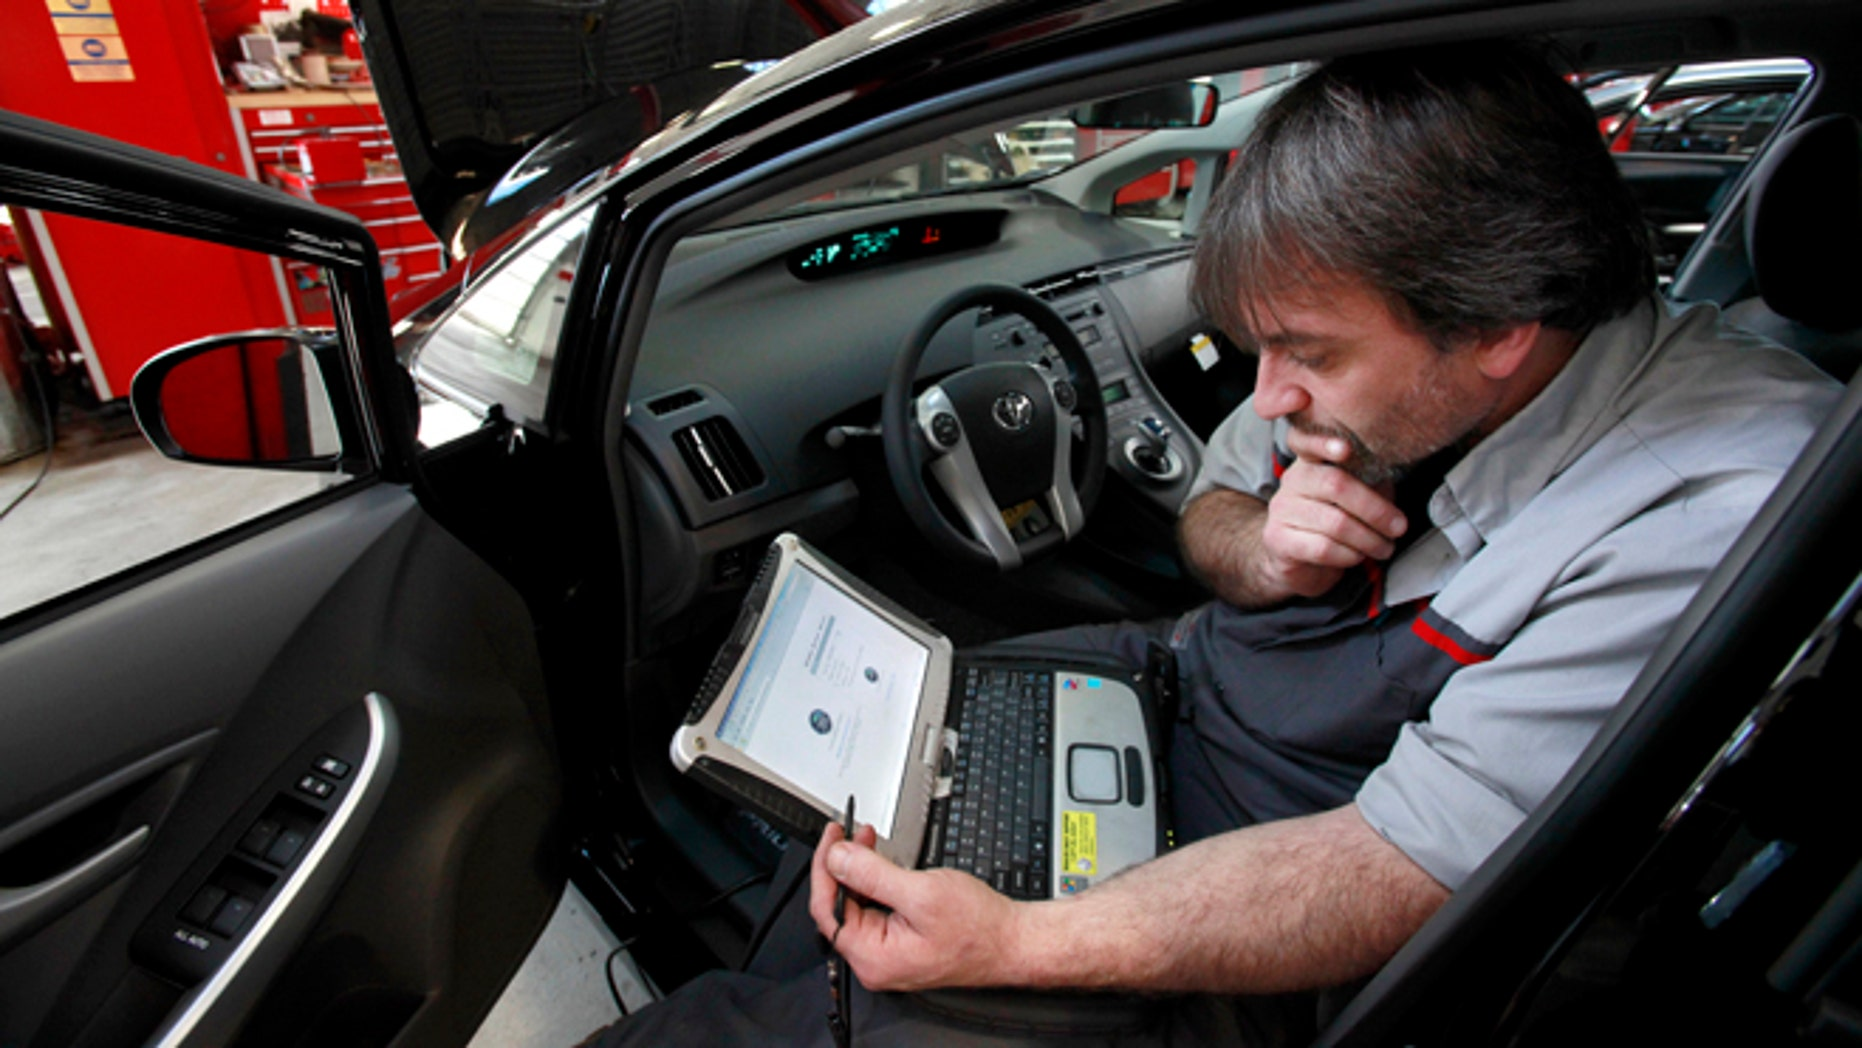 FILE - In this Feb. 9, 2010 file photo, master diagnostic technician Kurt Juergens, of Foxborough, Mass., uses a laptop computer to diagnose and repair the brake system on a 2010 Toyota Prius in the repair shop of a Toyota dealership, in Norwood, Mass. A pair of hackers maneuvered their way into the computer systems of a 2010 Toyota Prius and 2010 Ford Escape through a port used by mechanics. The hackers showed that they could slam on the brakes at freeway speeds, jerk the steering wheel or even shut down the engine, all from their laptop computers. The work demonstrates vulnerabilities with the growing number of car computers, about 20 on older models and up to 70 on sophisticated luxury cars. (AP Photo/Steven Senne, File)